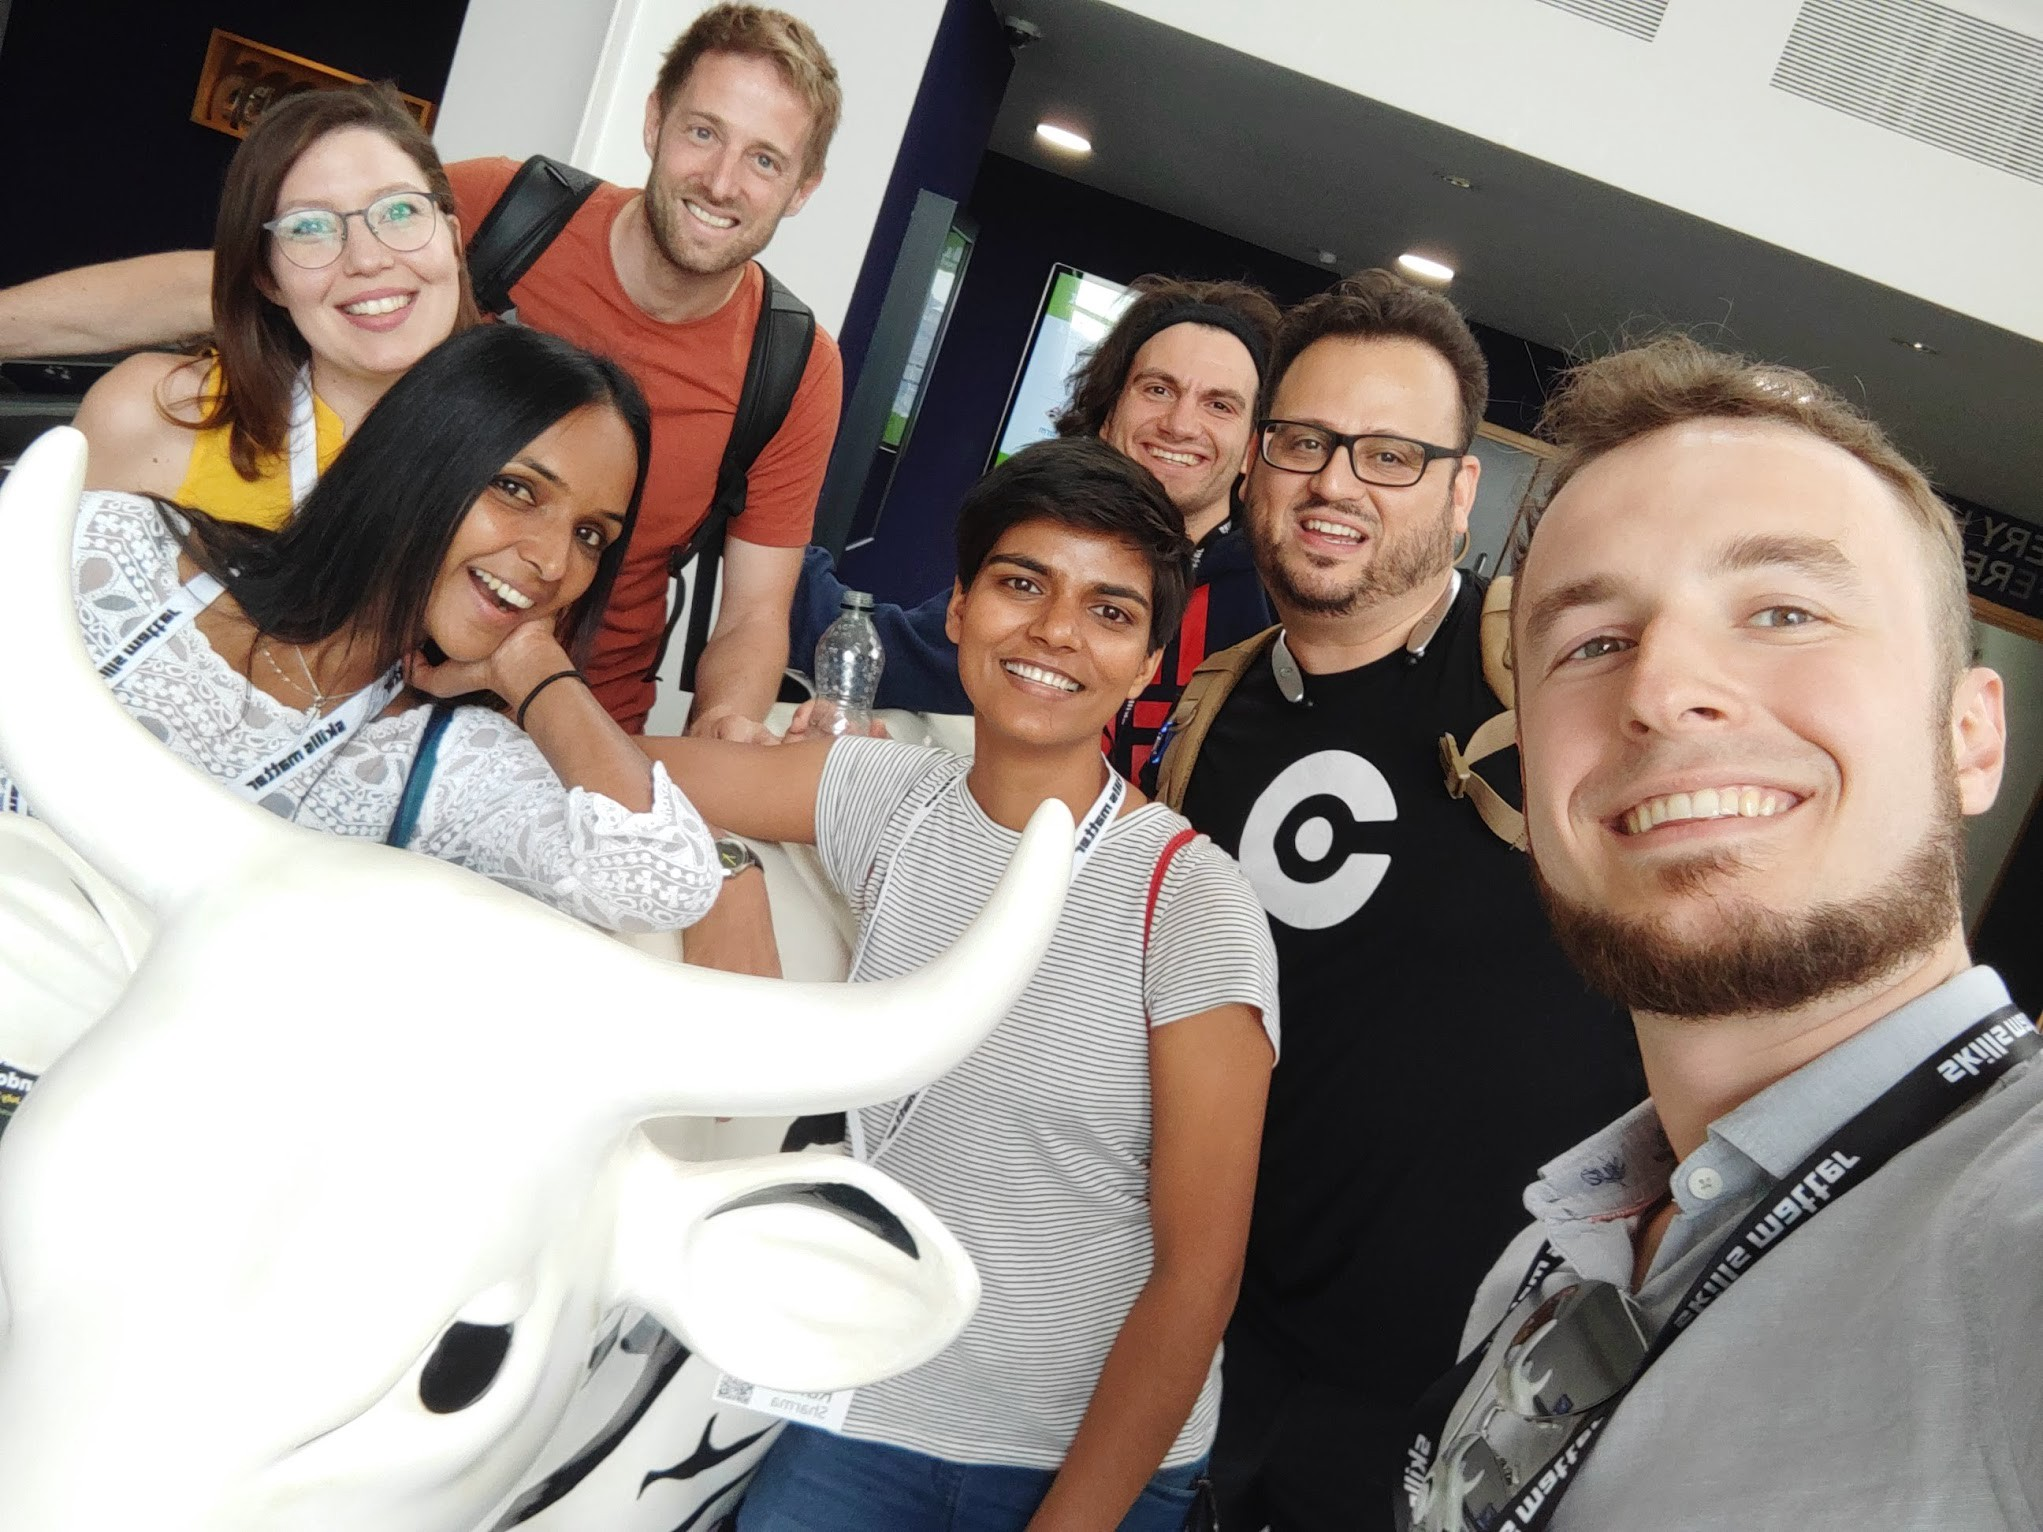 A group selfie with a cow